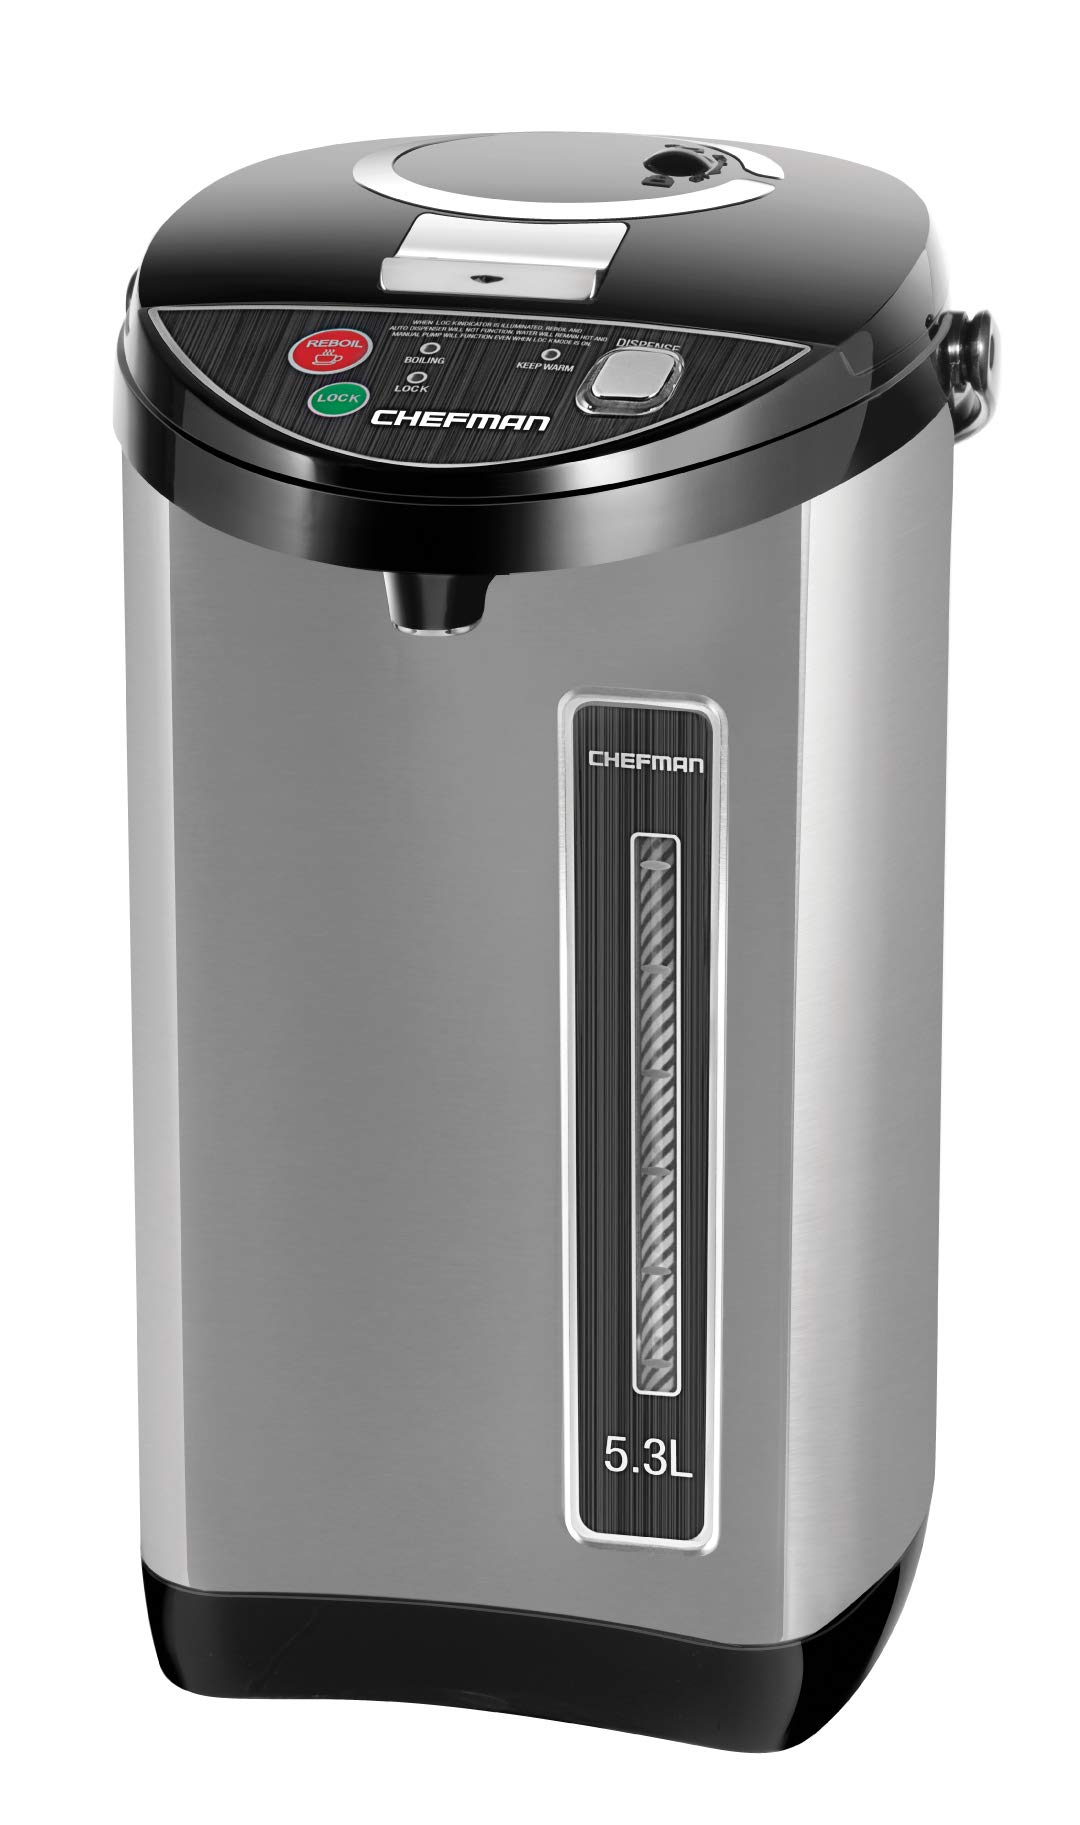 Chefman Instant Electric Hot Water Pot Coffee Urn w/ Auto & Manual Dispense Buttons, Safety Lock, Auto-Shutoff & Boil Dry Protection, UL Certified, Insulated Stainless Steel, 5.3L/5.6 Qt/30+ Cups by Chefman